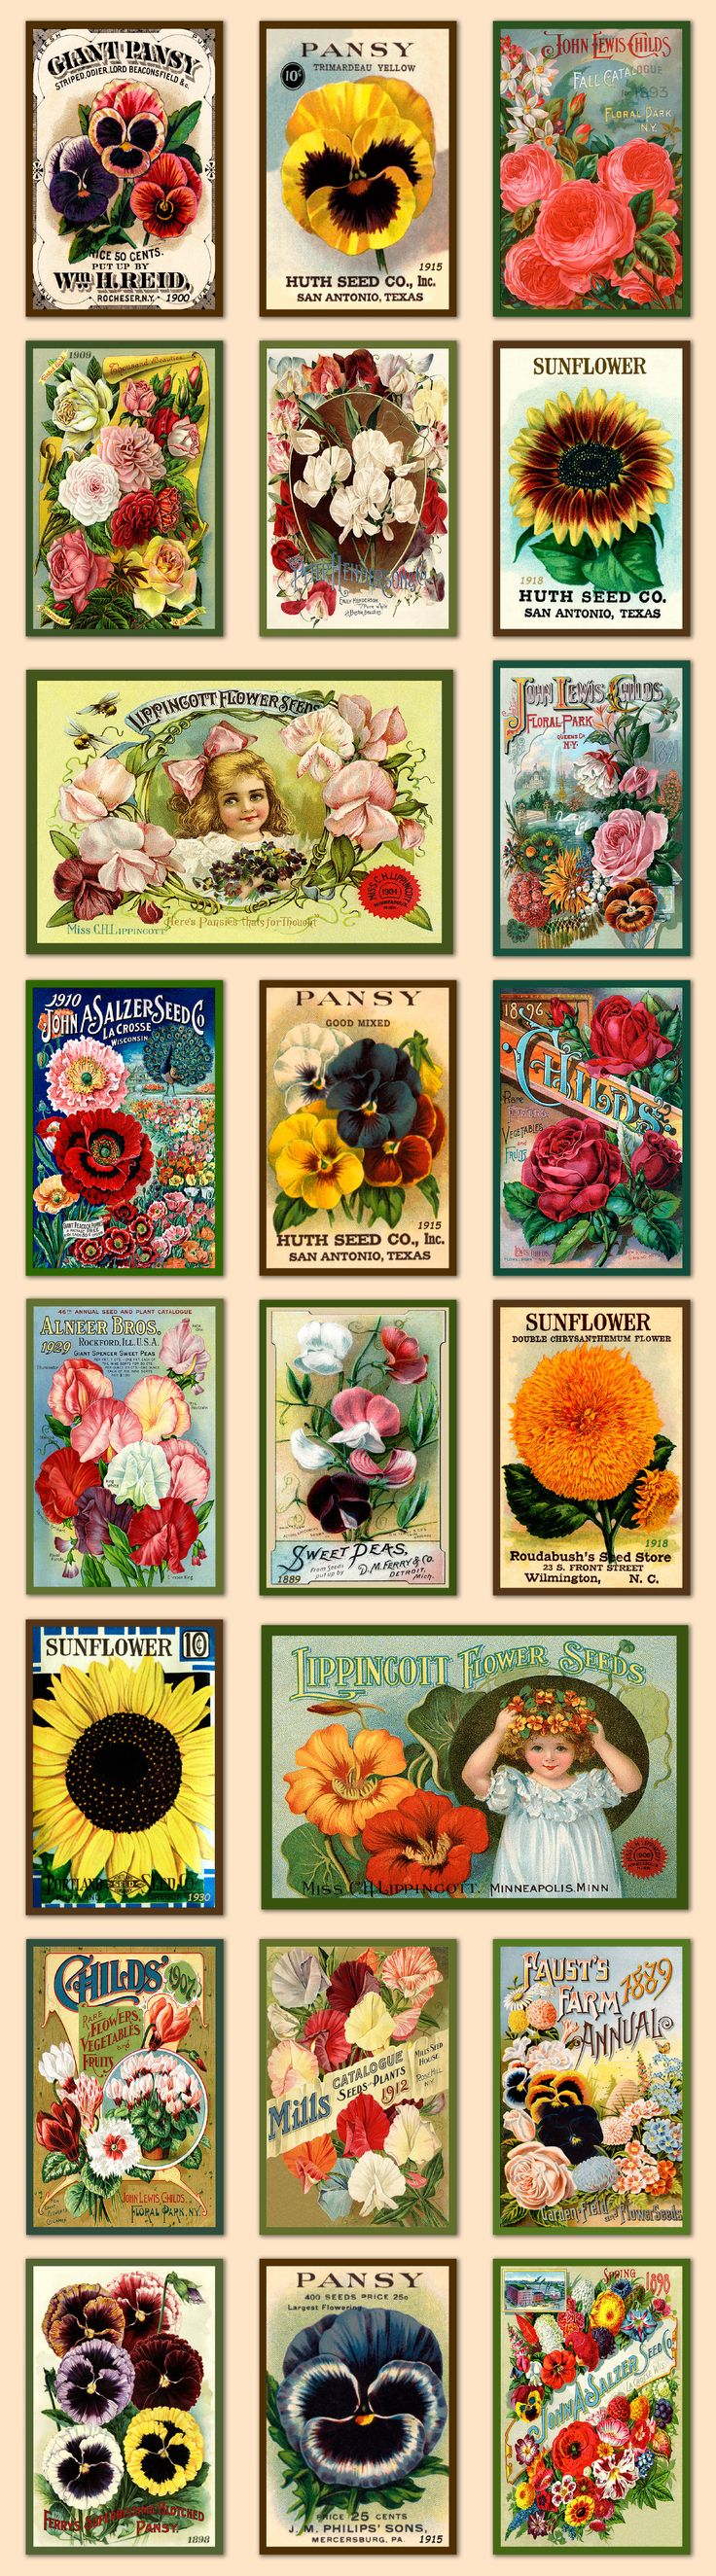 Vintage flower and seed packet quilt block sets. Available for purchase as quilt blocks in various sizes at oldemaericaantiques.com.